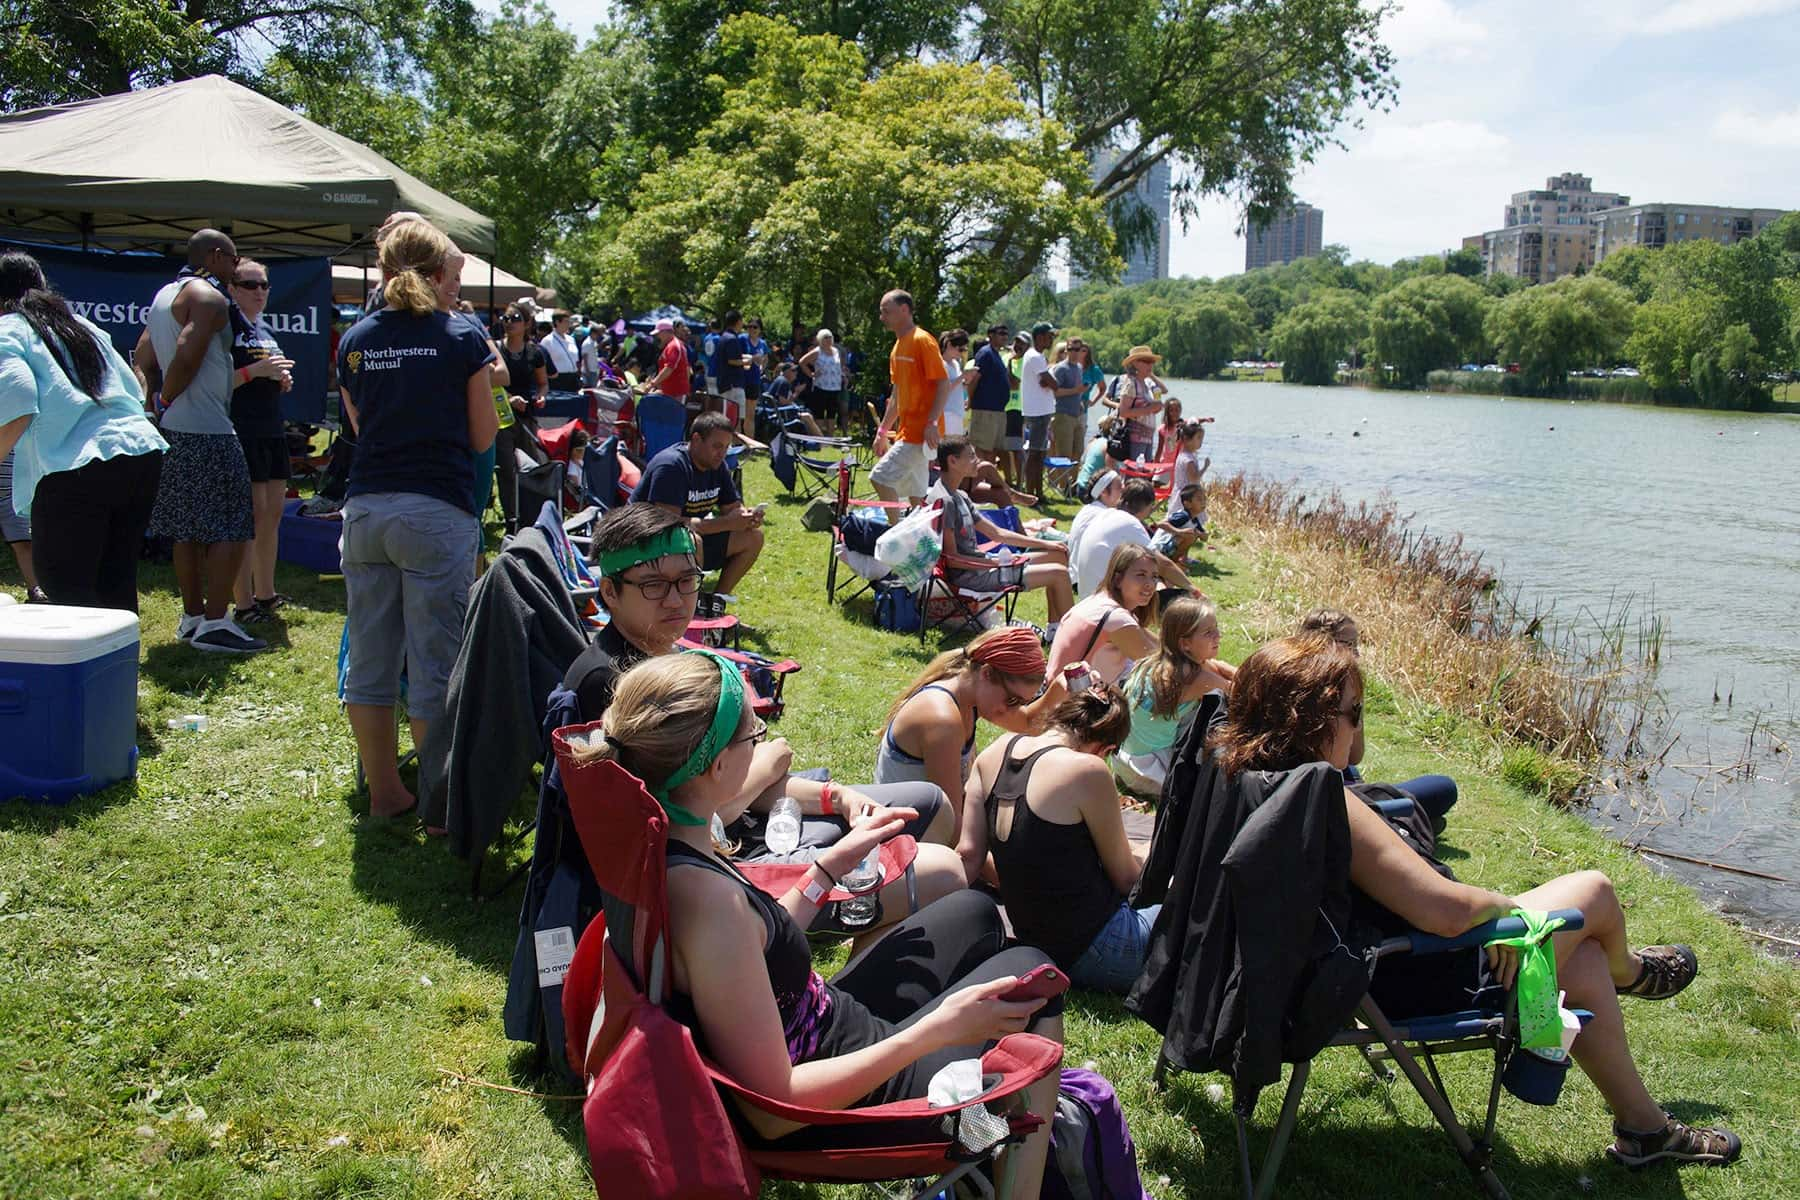 080116_dragonboat_album_03_08